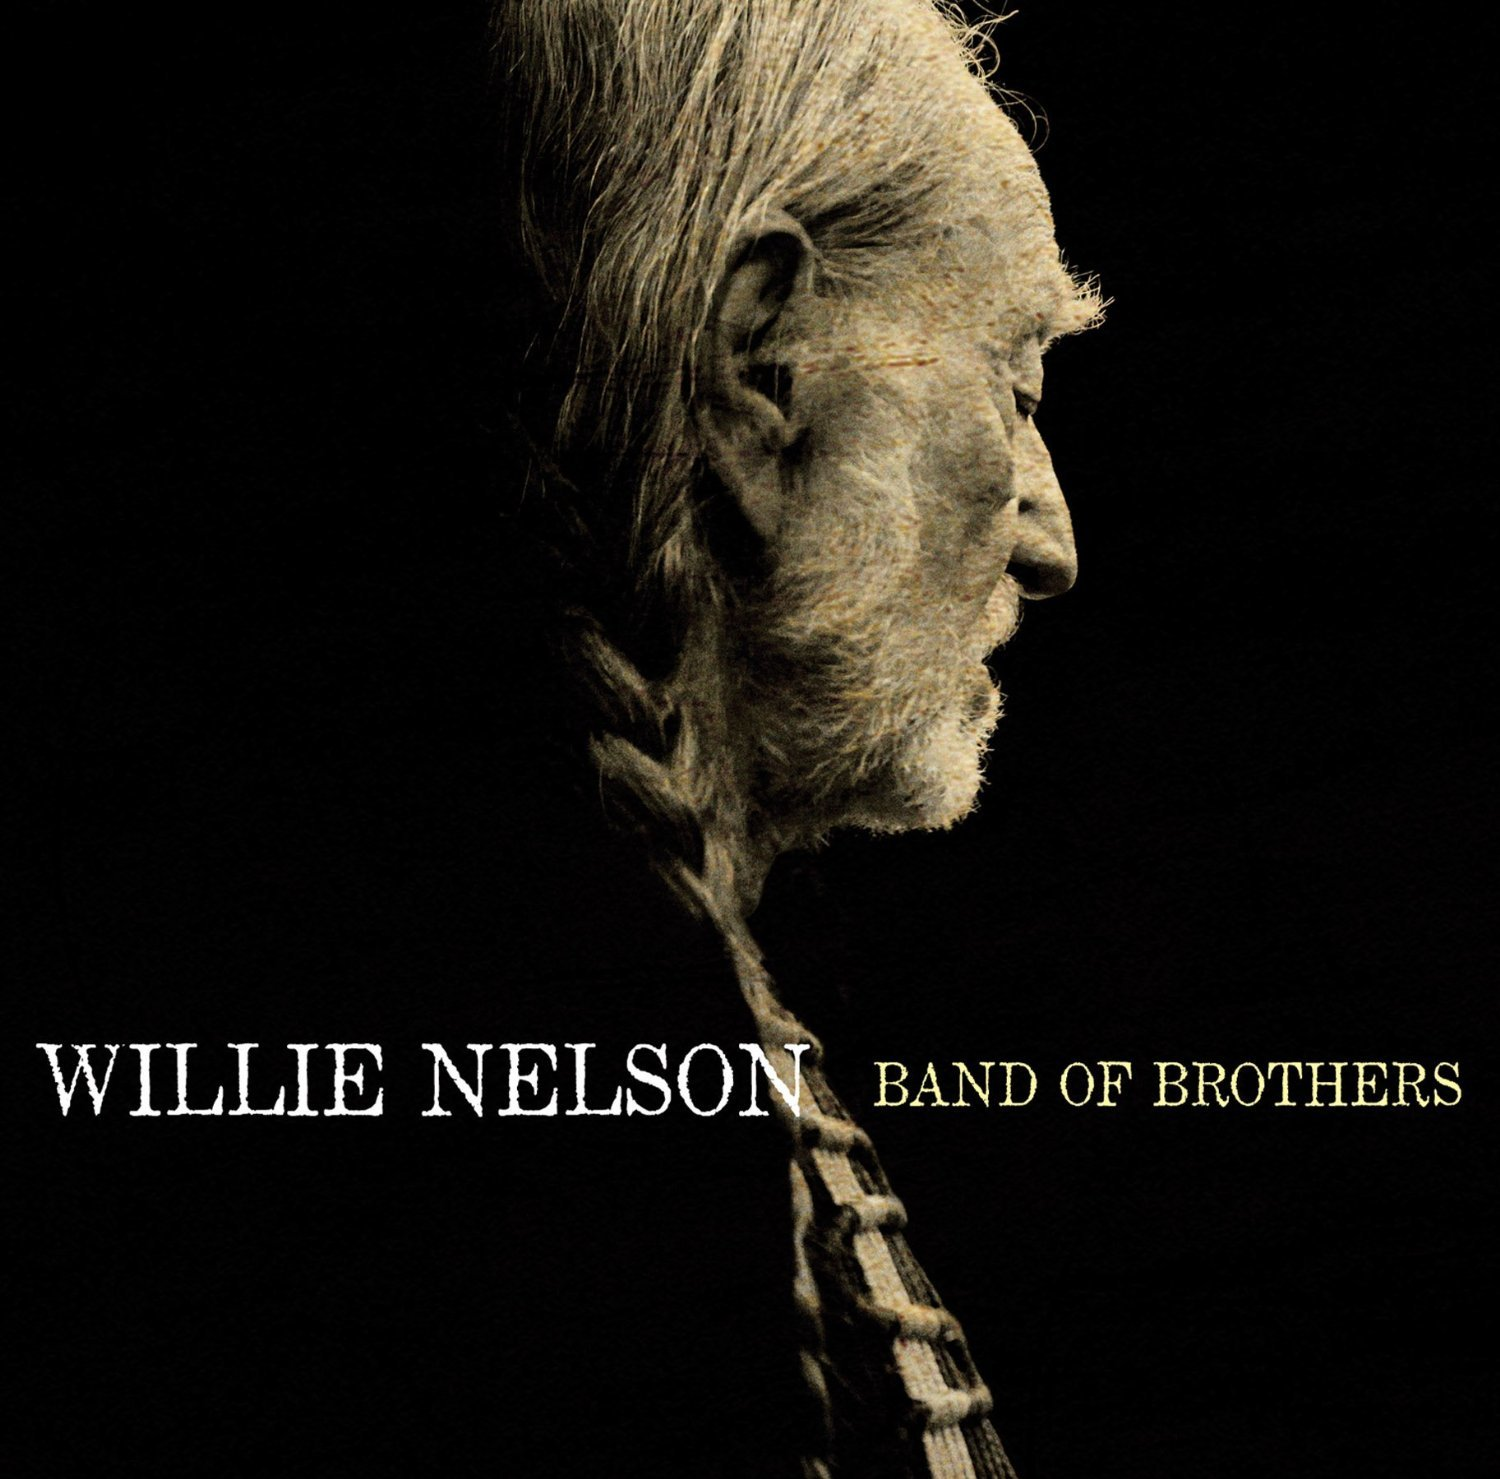 Willie Nelson Shows Soul With 'Band of Brothers'